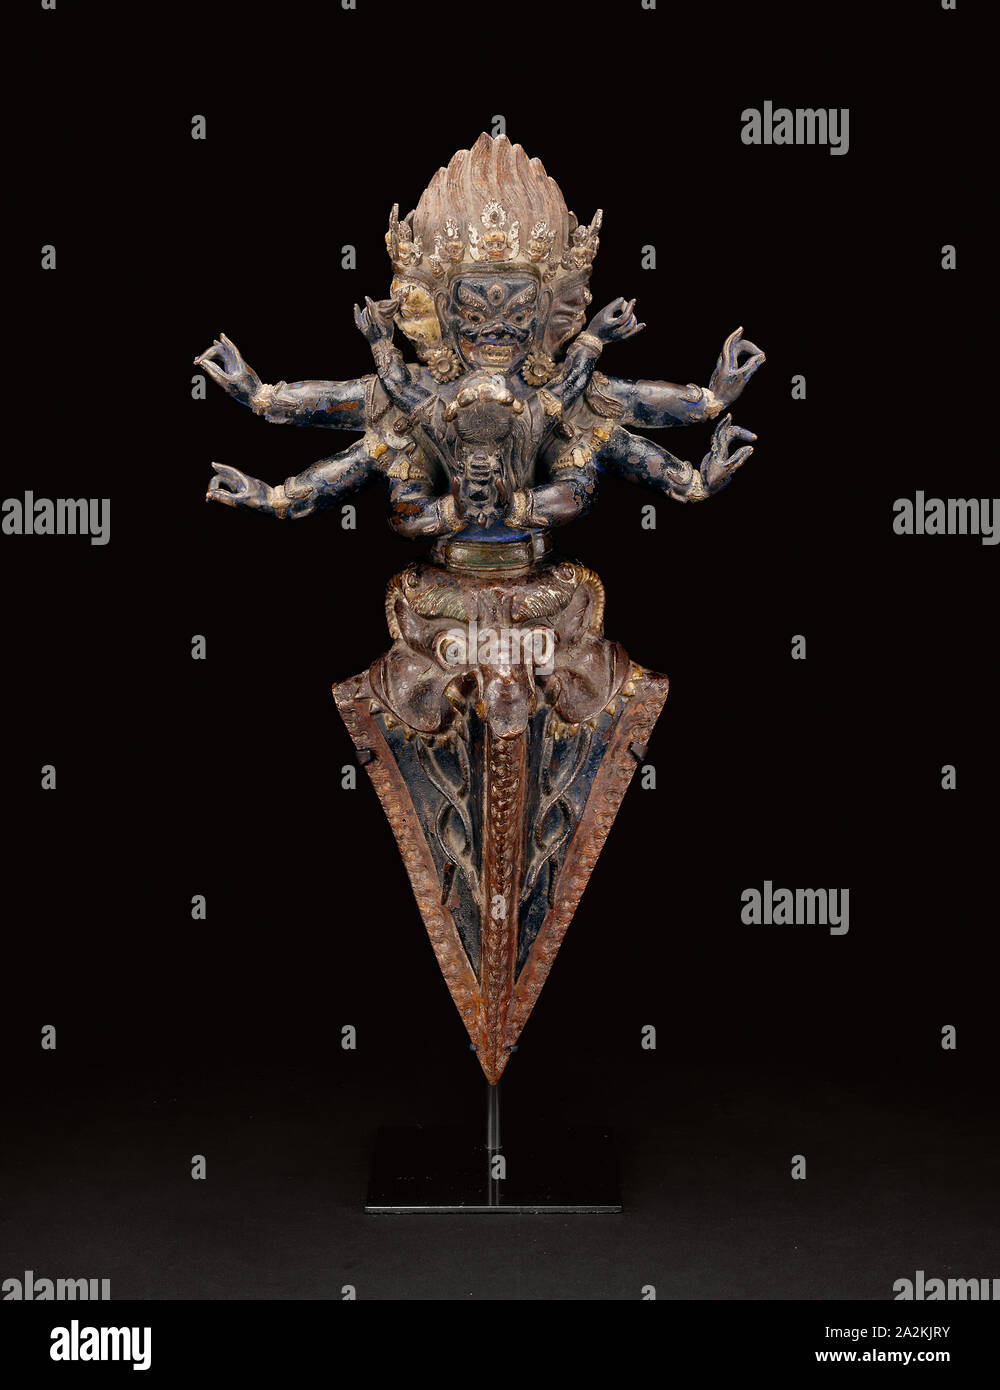 Personified Ritual Dagger (Vajrakila) in Ritual Embrace (Yab-yum), 16th century, Tibet, Tibet, Copper repoussé over wood, 43.1 x 24.8 x 10.3 cm (17 x 9 3/4 x 4 1/16 in.), Rookery Building, 209 South La Salle Street, Chicago, Illinois: Grille from Interior Central Court, c. 1885/88, Removed during 1905–1907 renovation, Burnham & Root (American, 1873-1891), Architect and designer: John Wellborn Root (American, 1850-1891), LaSalle Street, 209 South, Wrought iron, bolted to wall-mounted frame, 158.6 × 65.7 × .7 cm Stock Photo